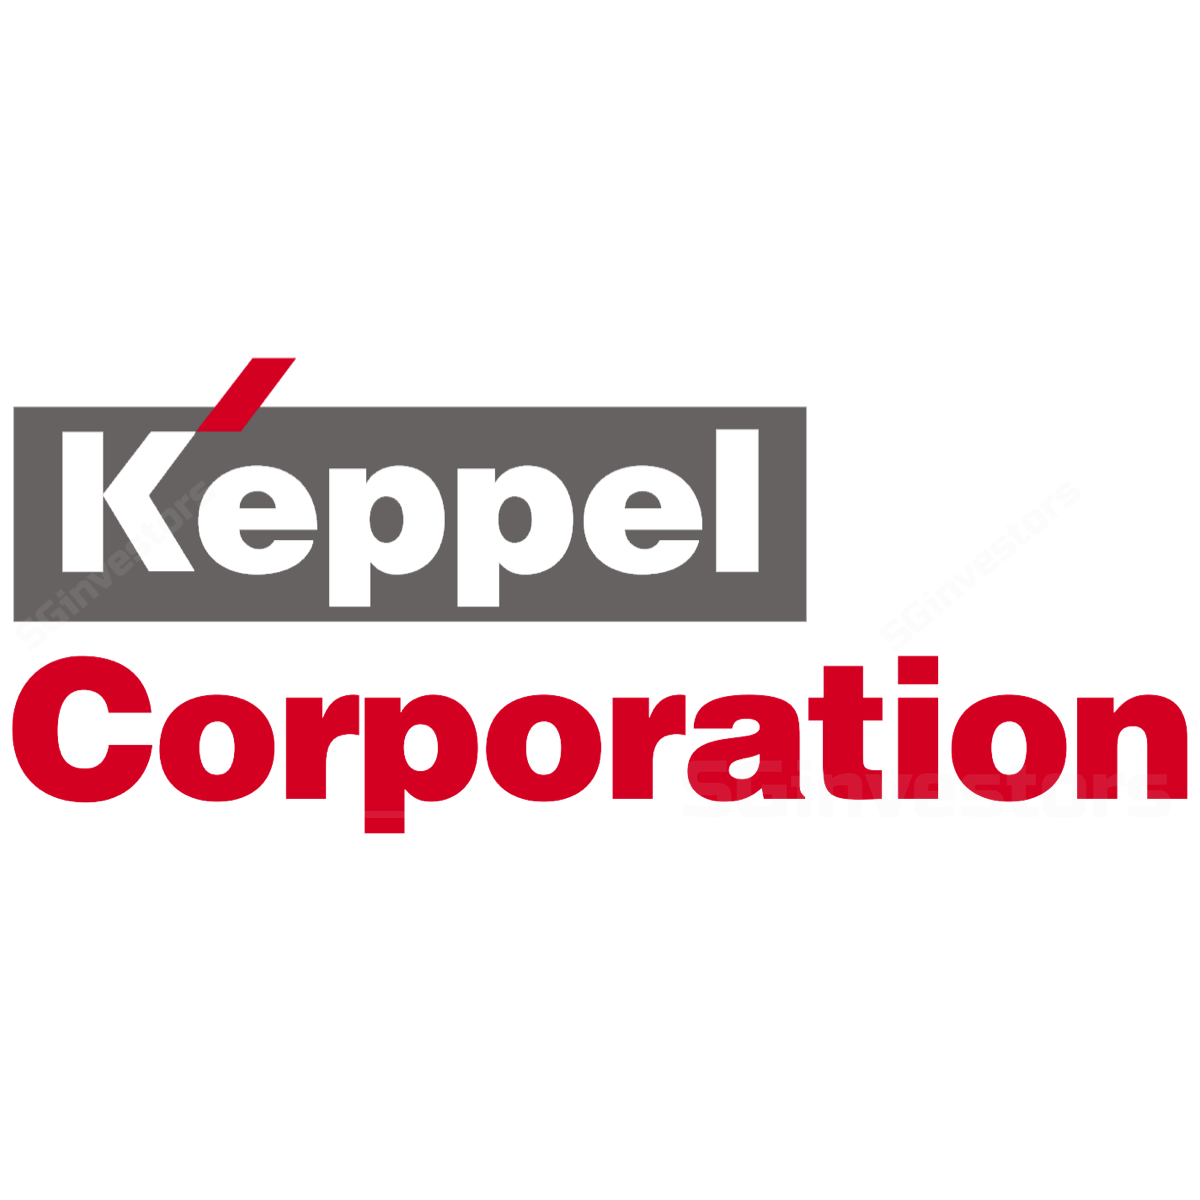 Keppel Corporation (KEP SP) - DBS Vickers 2017-08-18: Sells Keppel Lakefront (Nantong); Divests Partial Stake In Vessel